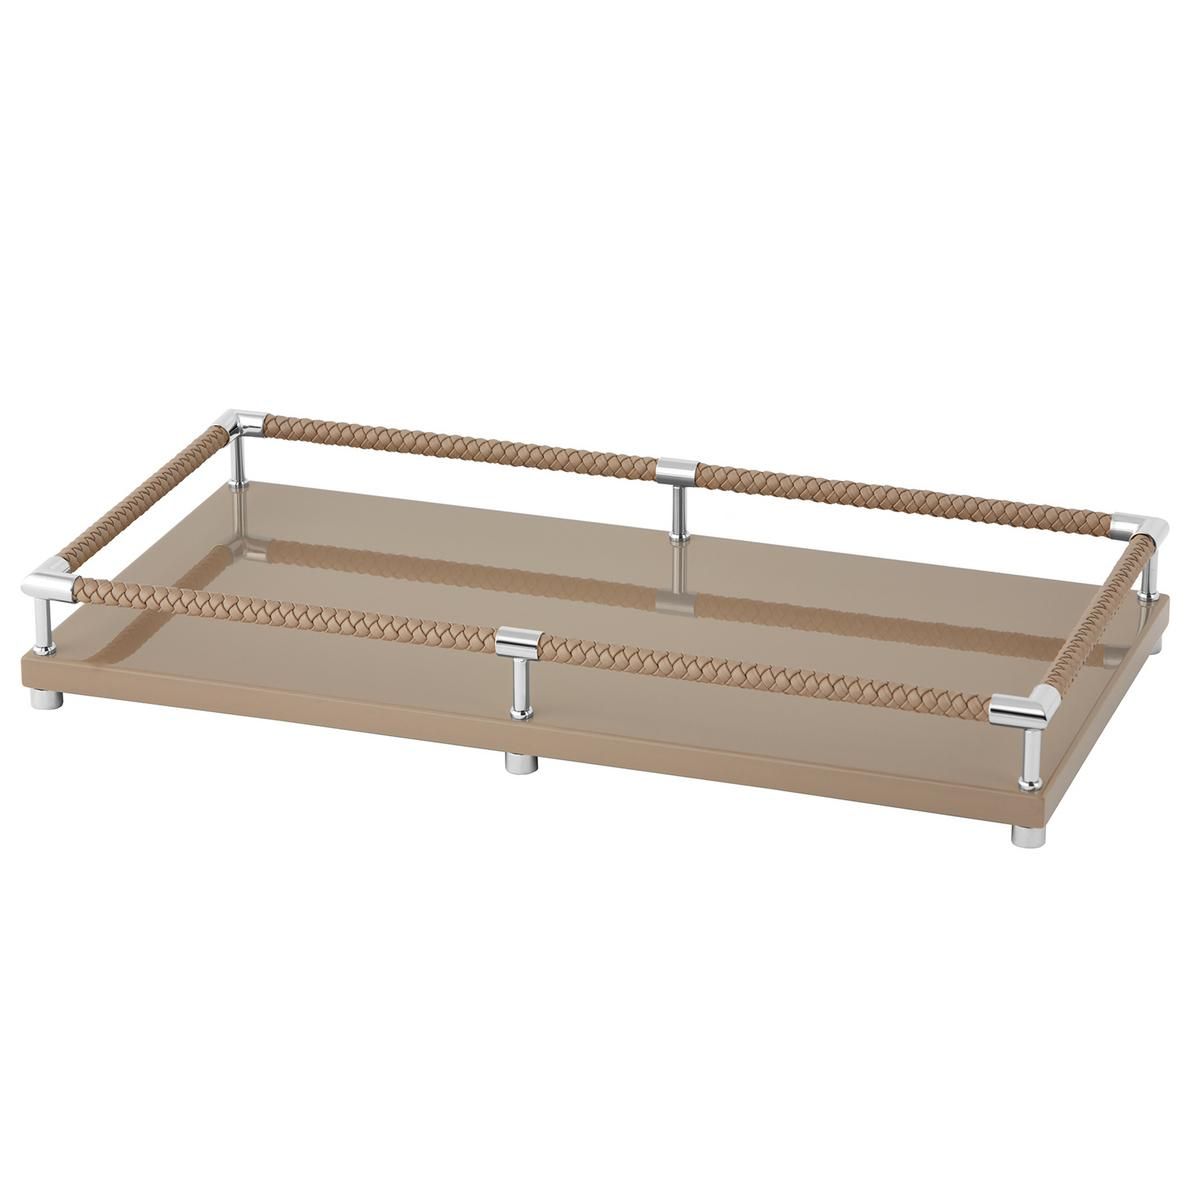 Riviere vanity decorative tray with leather handles taupe for Decorative bathroom tray